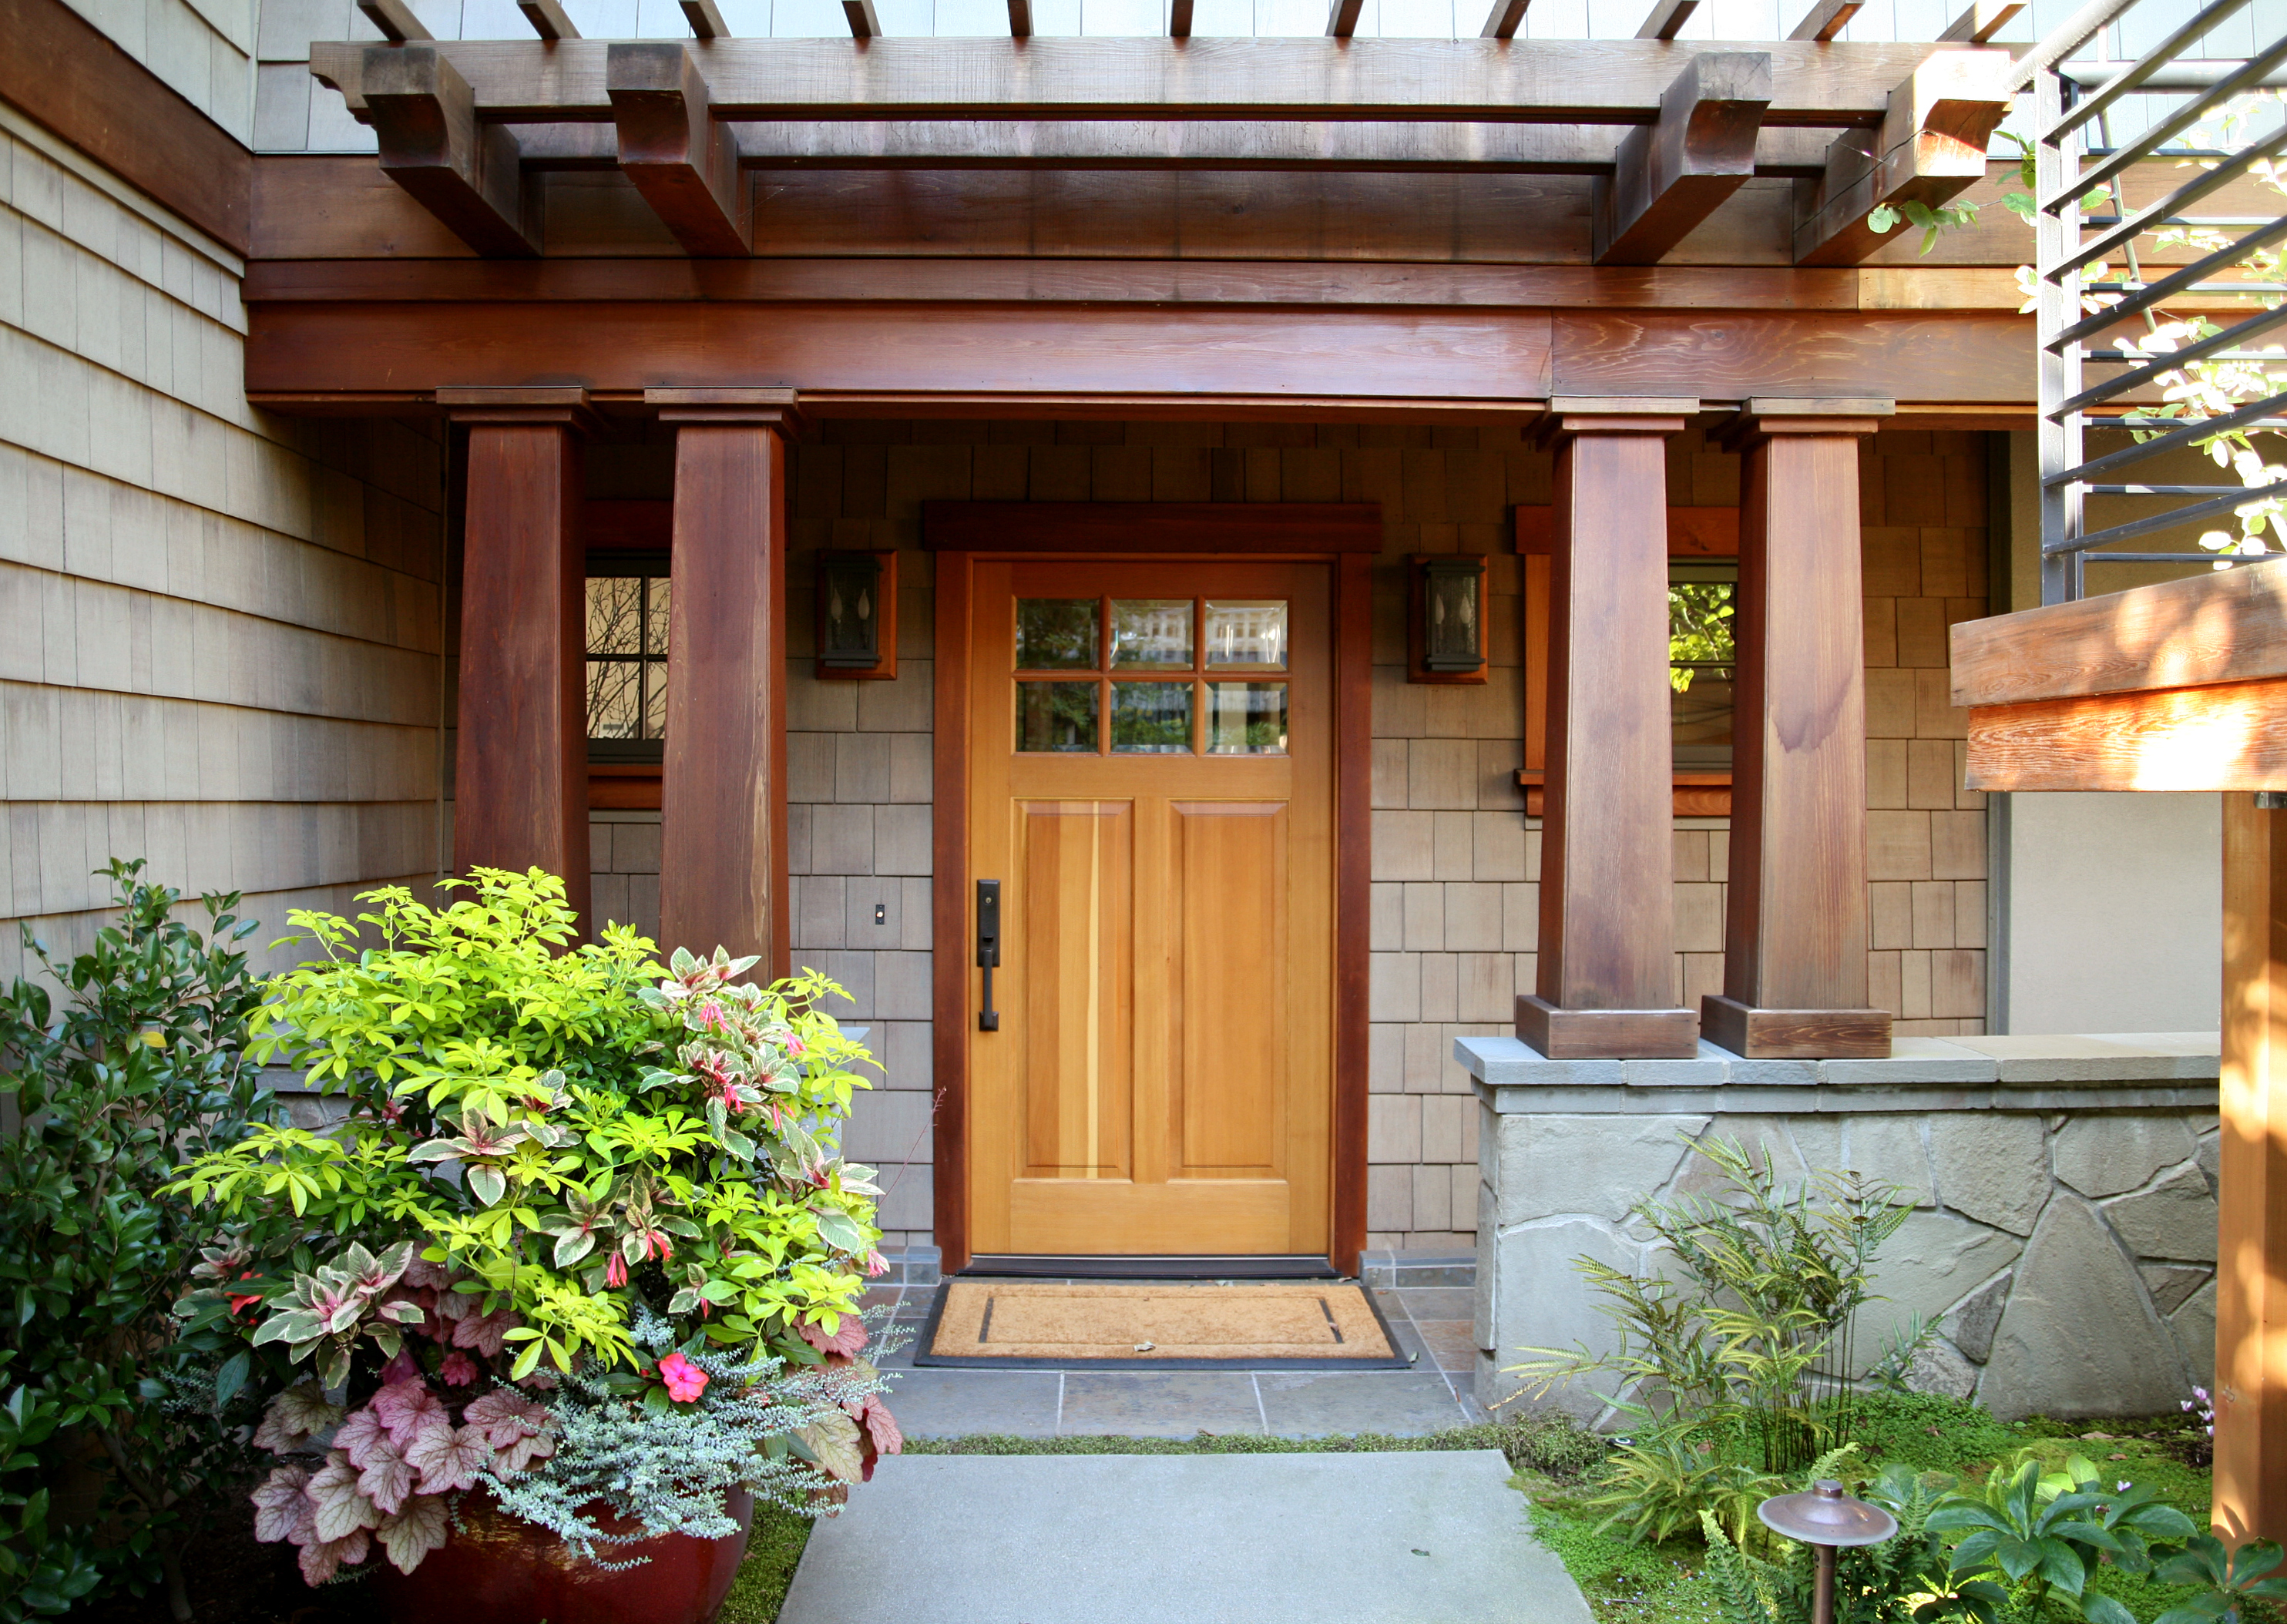 S. Lake Washington Remodel Exterior